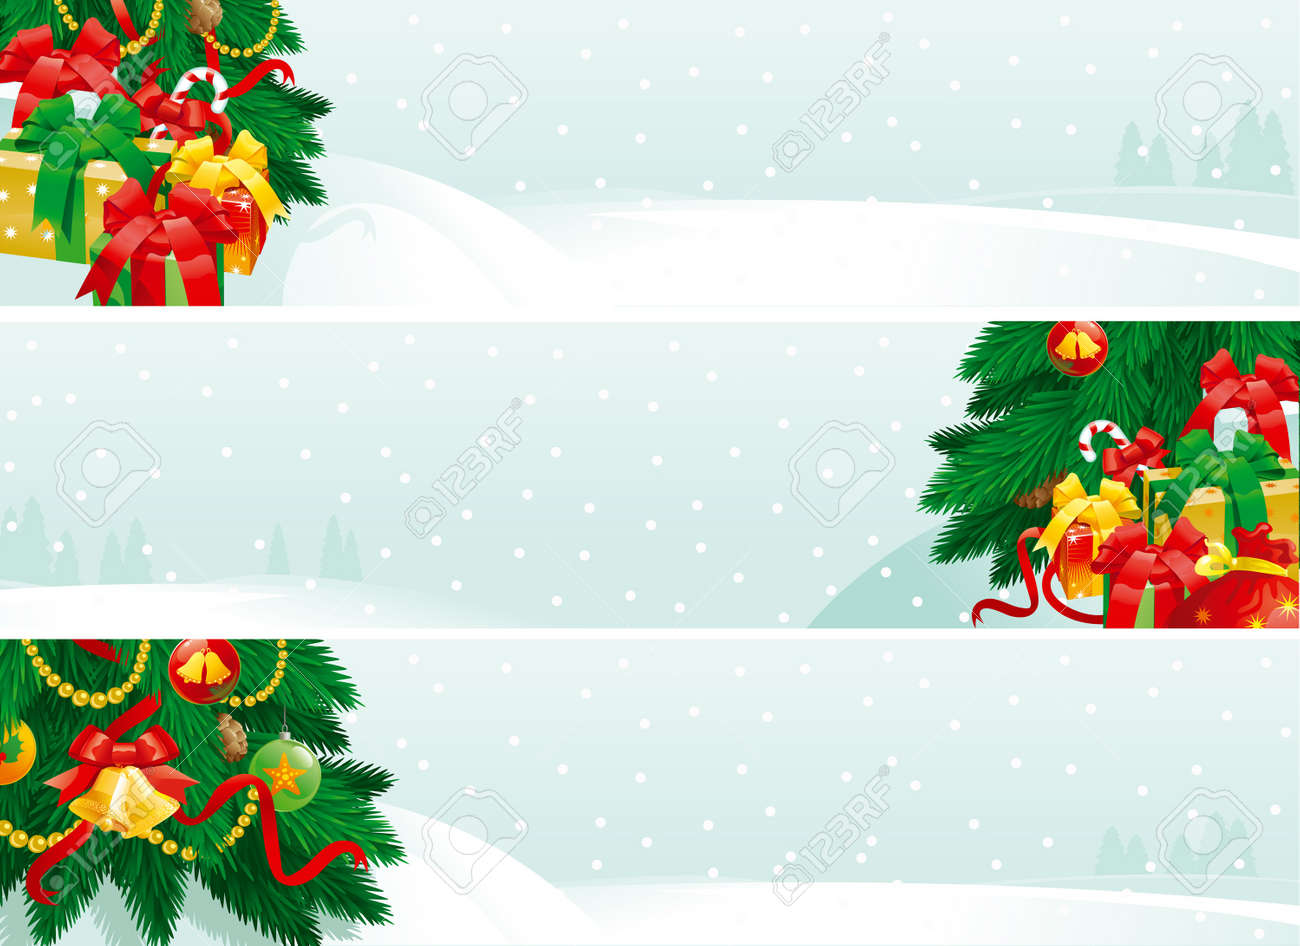 Christmas decorations and Christmas gifts. banners of christmas fir tree with baubles and gift boxes on winter landscape. Stock Vector - 11320692